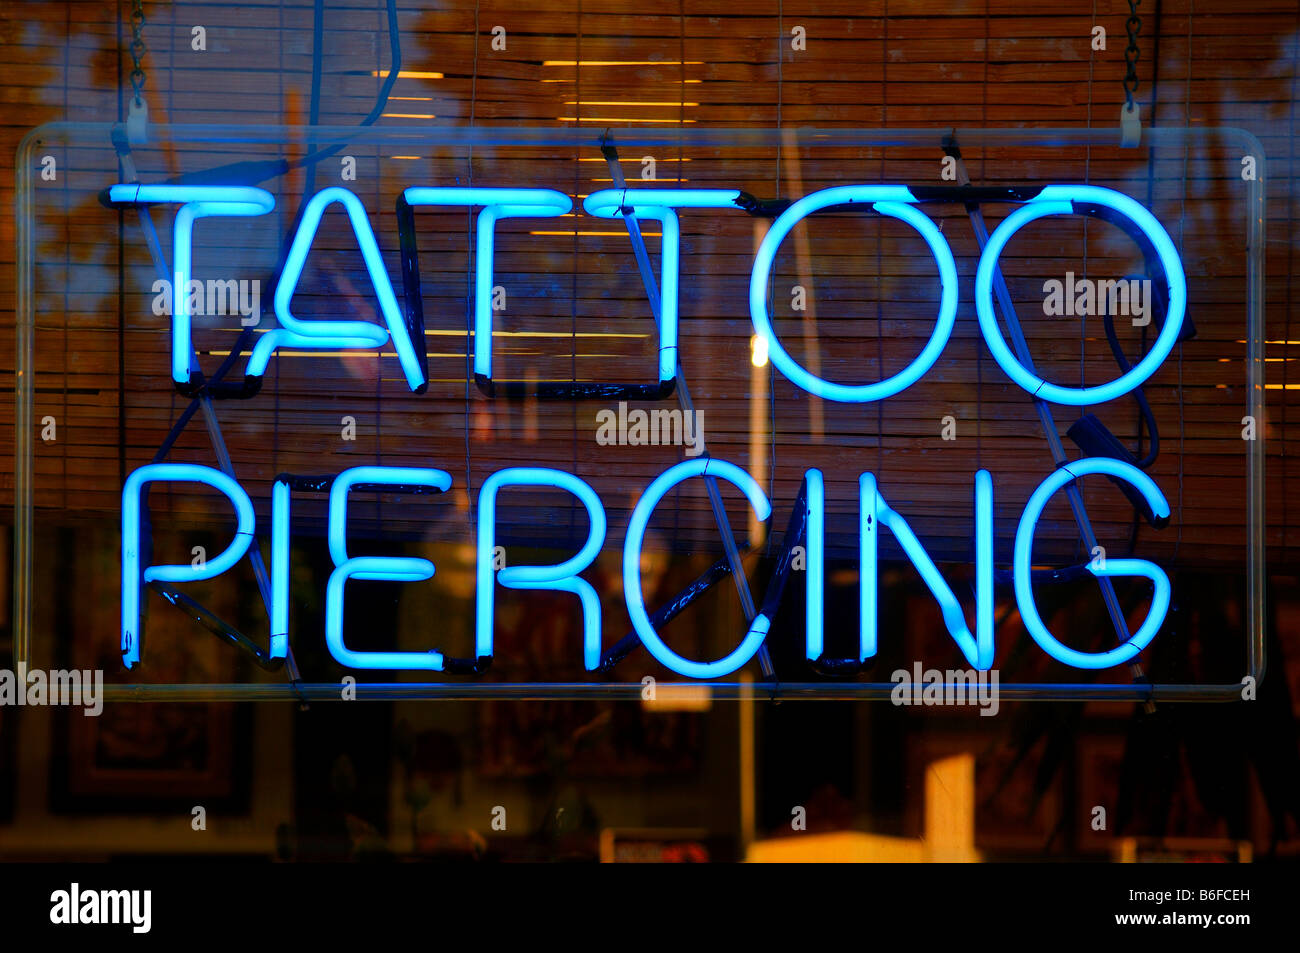 Tattoo shop neon sign stockfotos tattoo shop neon sign for Neon tattoo signs